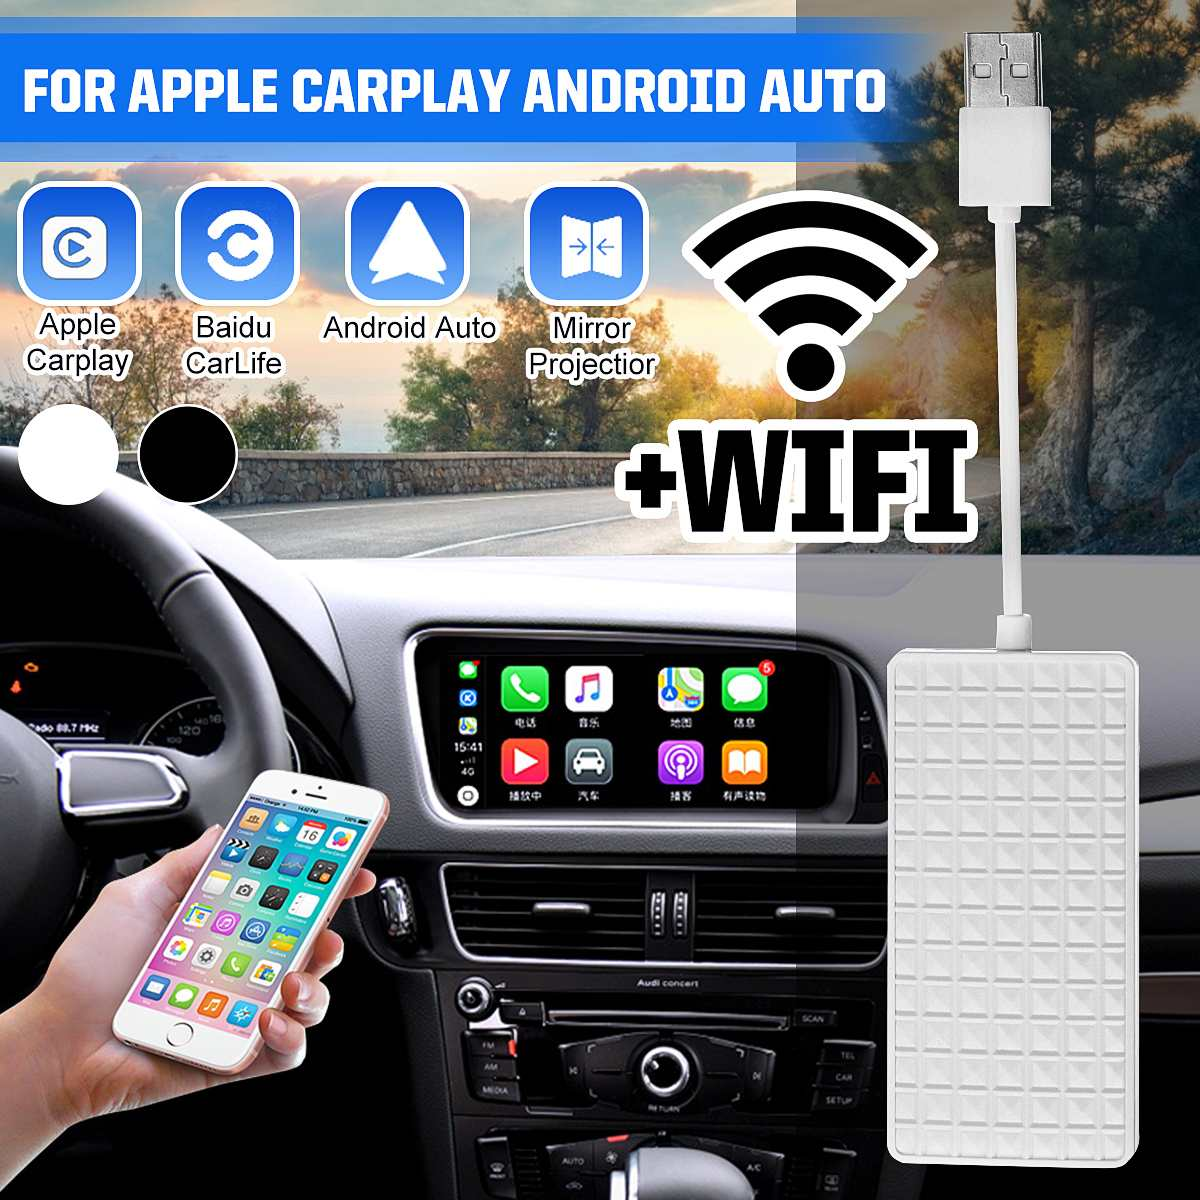 Wireless WiFi Carlinkit USB Smart Link For Apple CarPlay Dongle For Android Navigation Player Car Mini USB Carplay Stick Modules